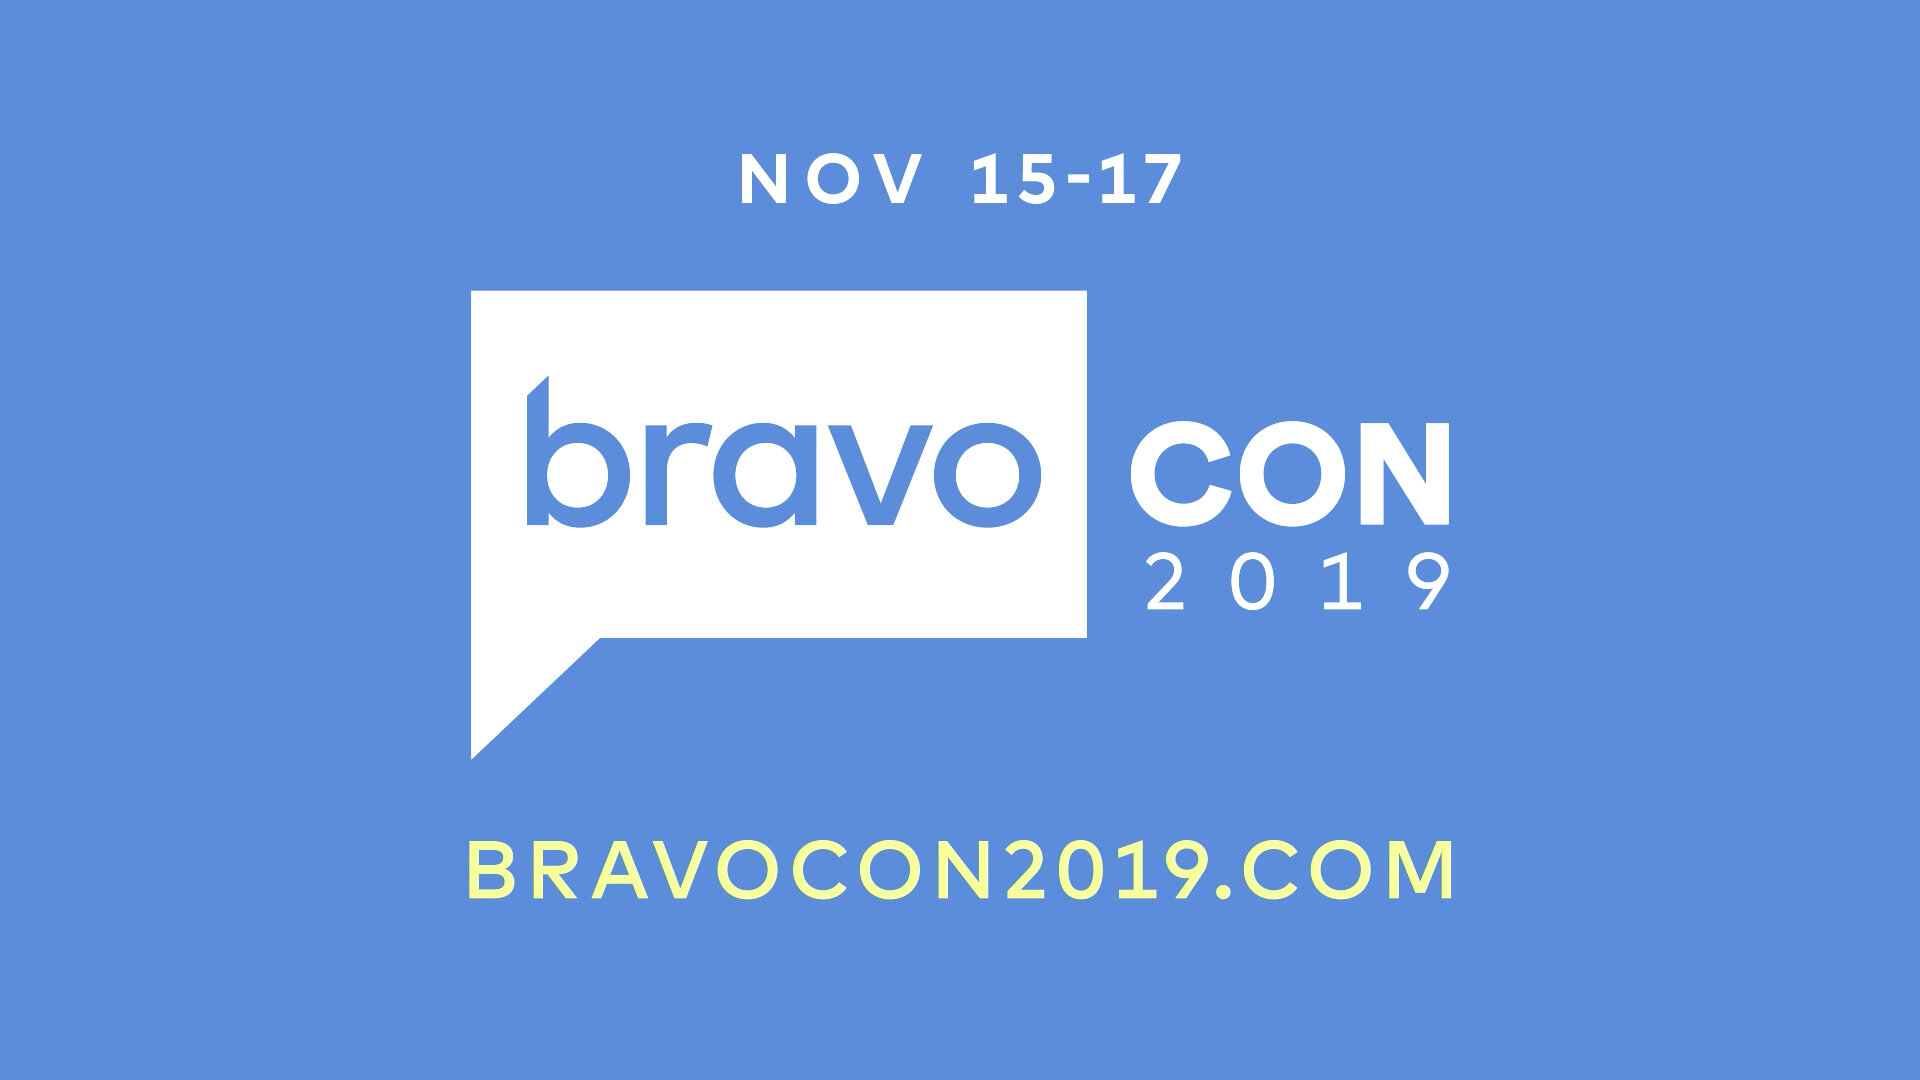 190808_4001740_BravoCon_is_Coming_This_November_.jpg